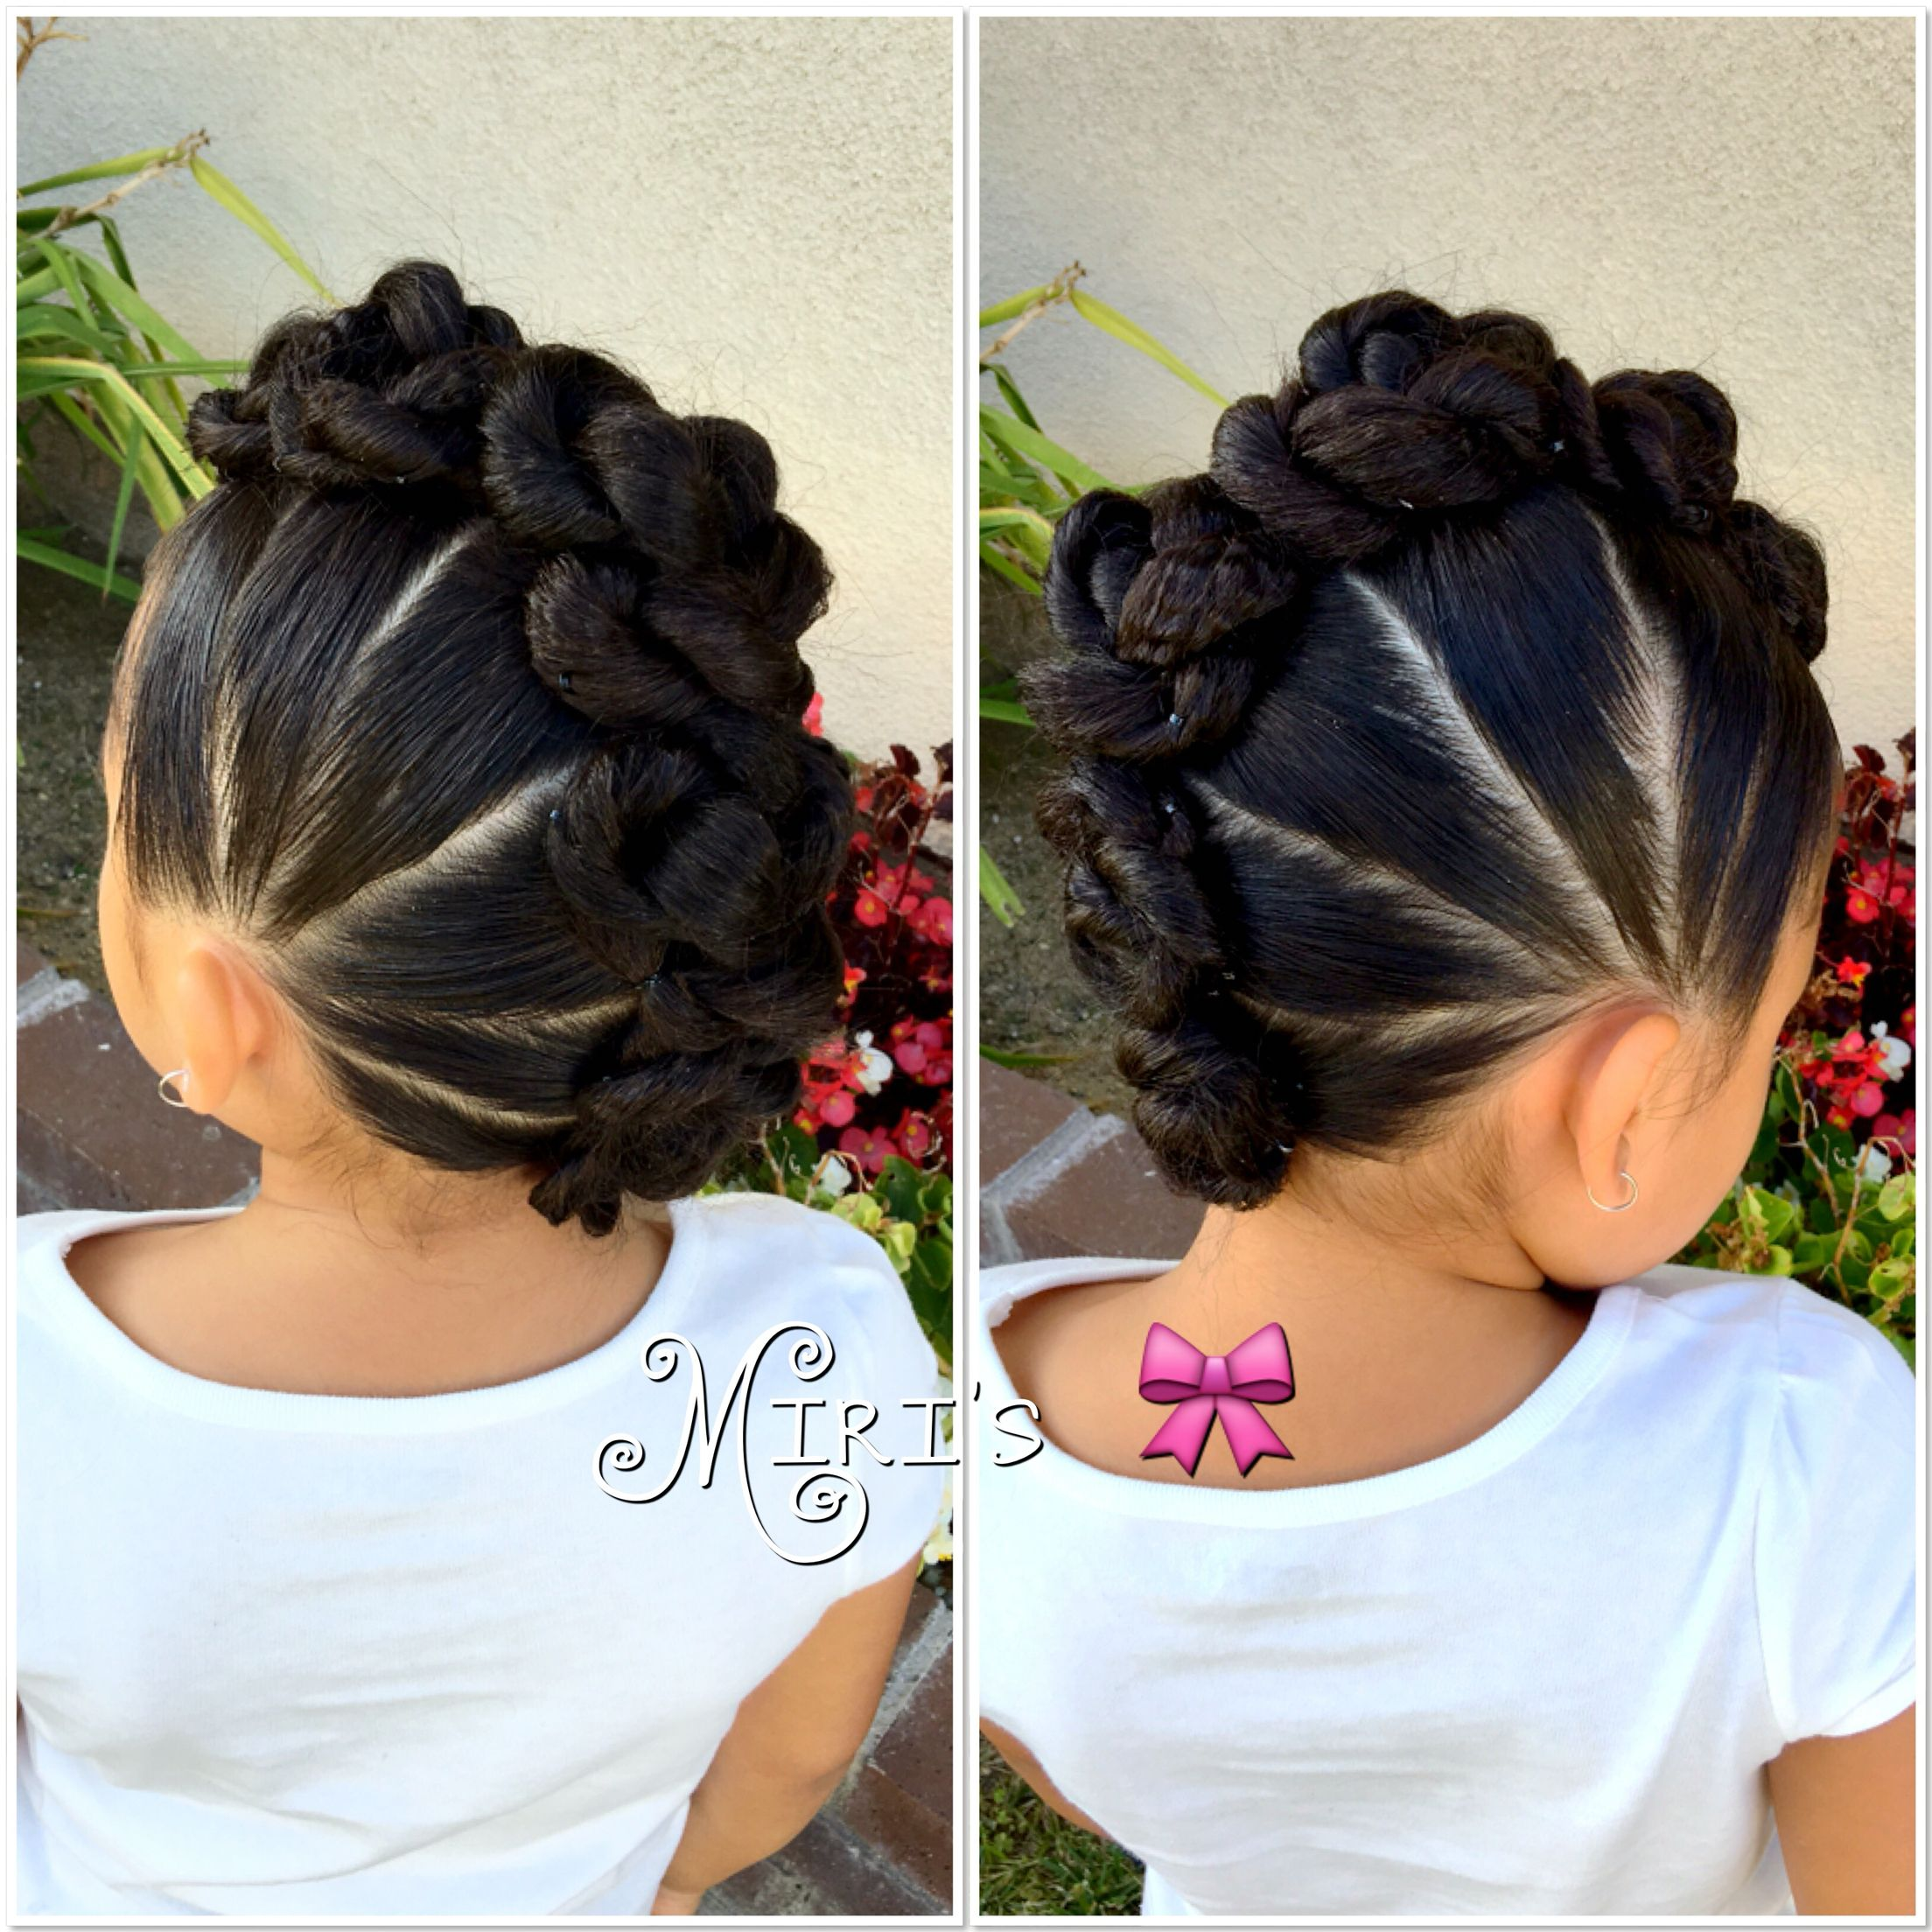 Twisties Hairstyles Amusing Mohawk With Twists Hair Style For Little Girls  Hair Tips & Hair